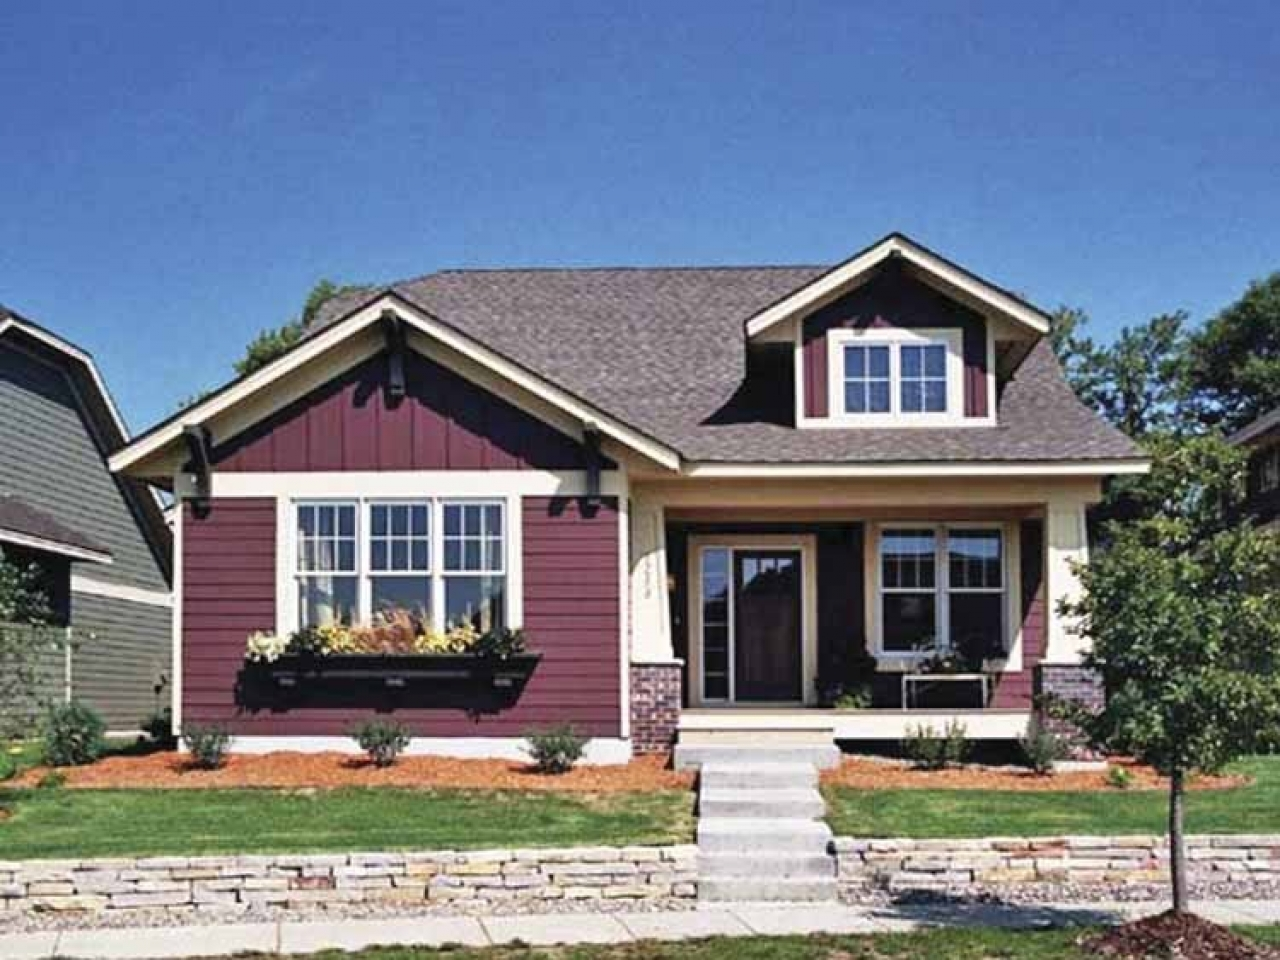 Single Story Bungalow Homes Single Story Craftsman